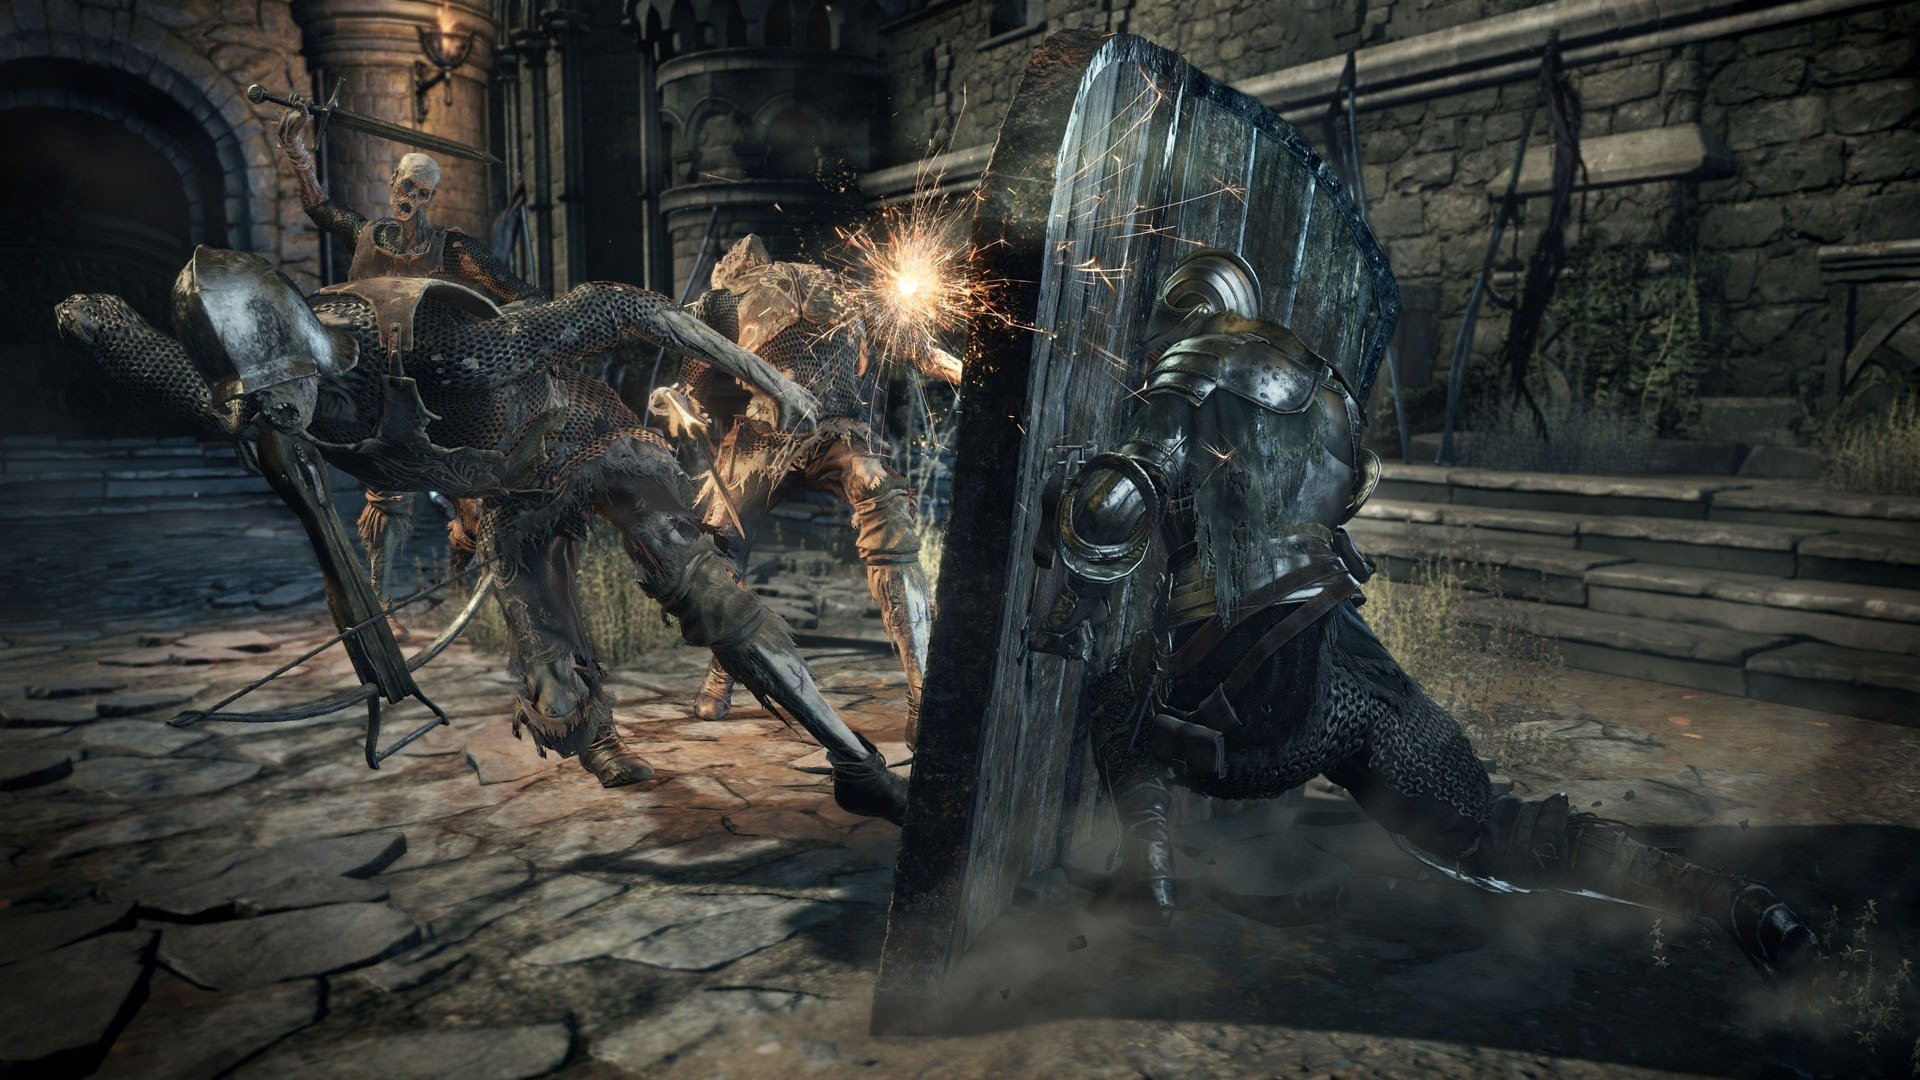 Download Wallpaper Dark Souls 3 The Ringed City 75158 Hd